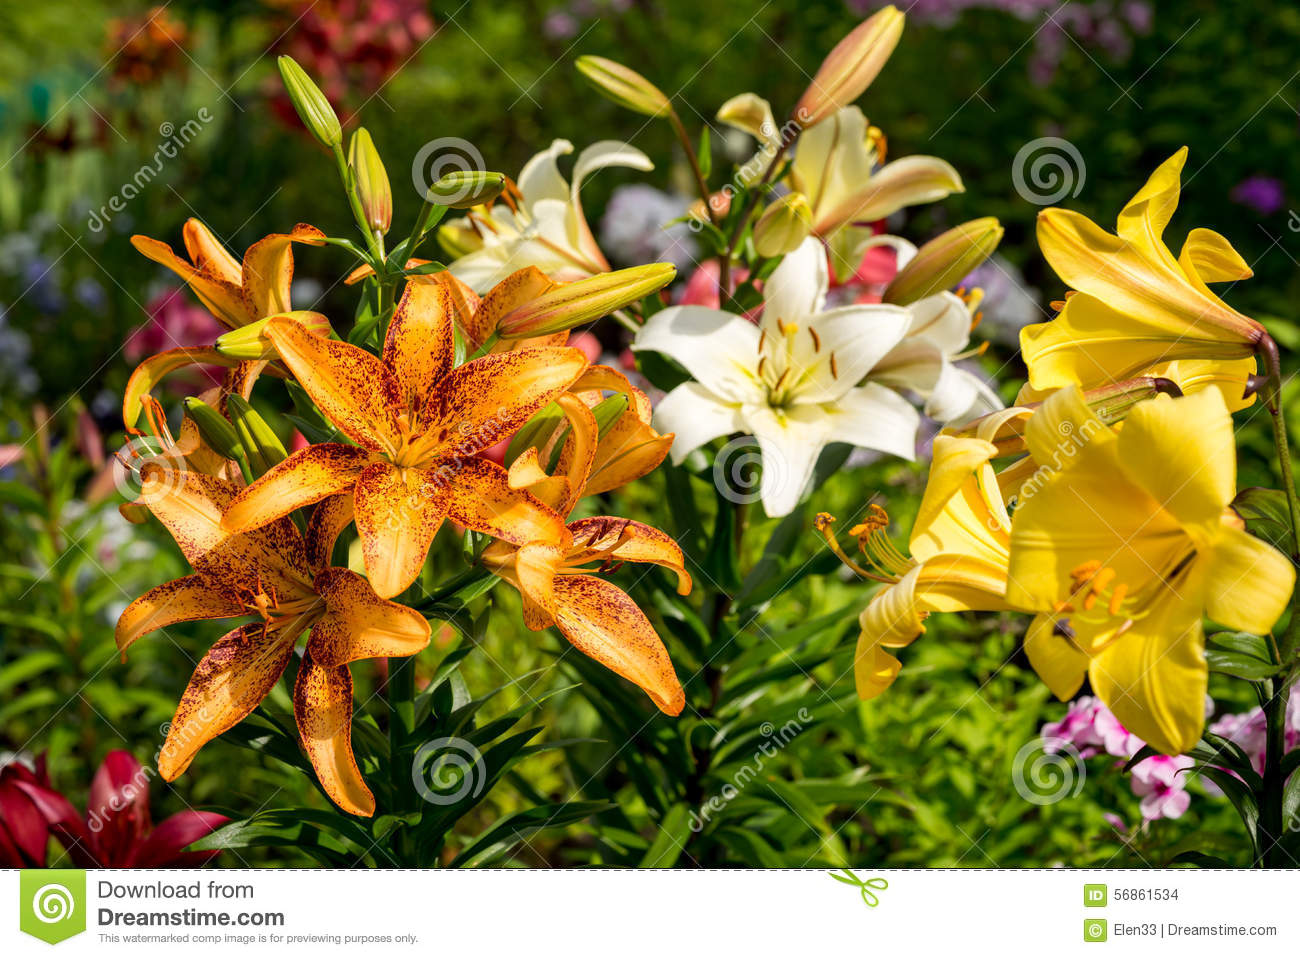 Flower stock photo image of green many garden growing 56861534 download comp izmirmasajfo